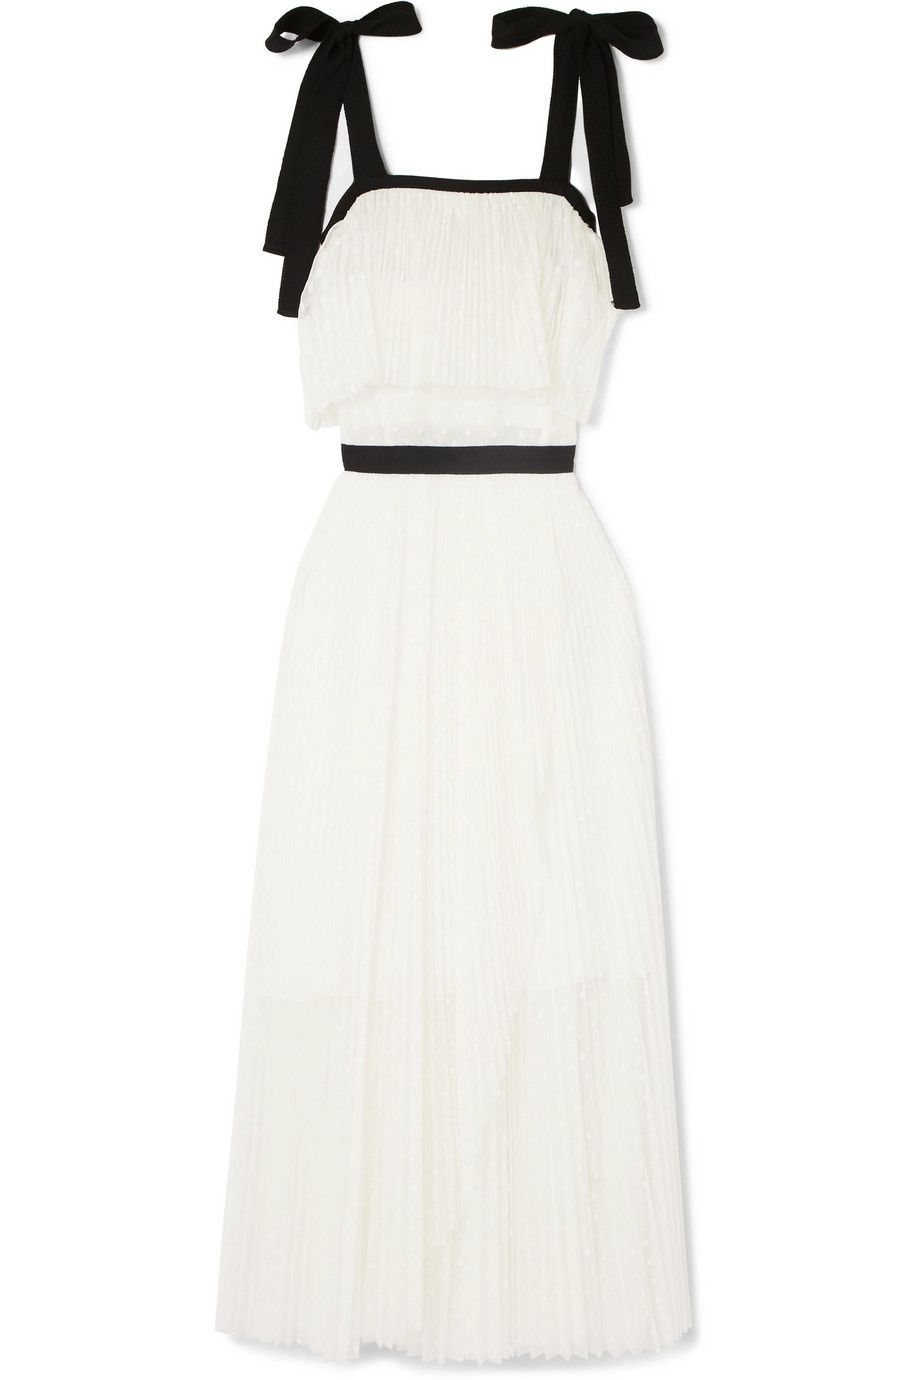 Discount Choice Low Price Sale Online Tiered Plissé Swiss-dot Tulle Dress - White Philosophy di Lorenzo Serafini Limited Edition For Sale a7J5XgoL